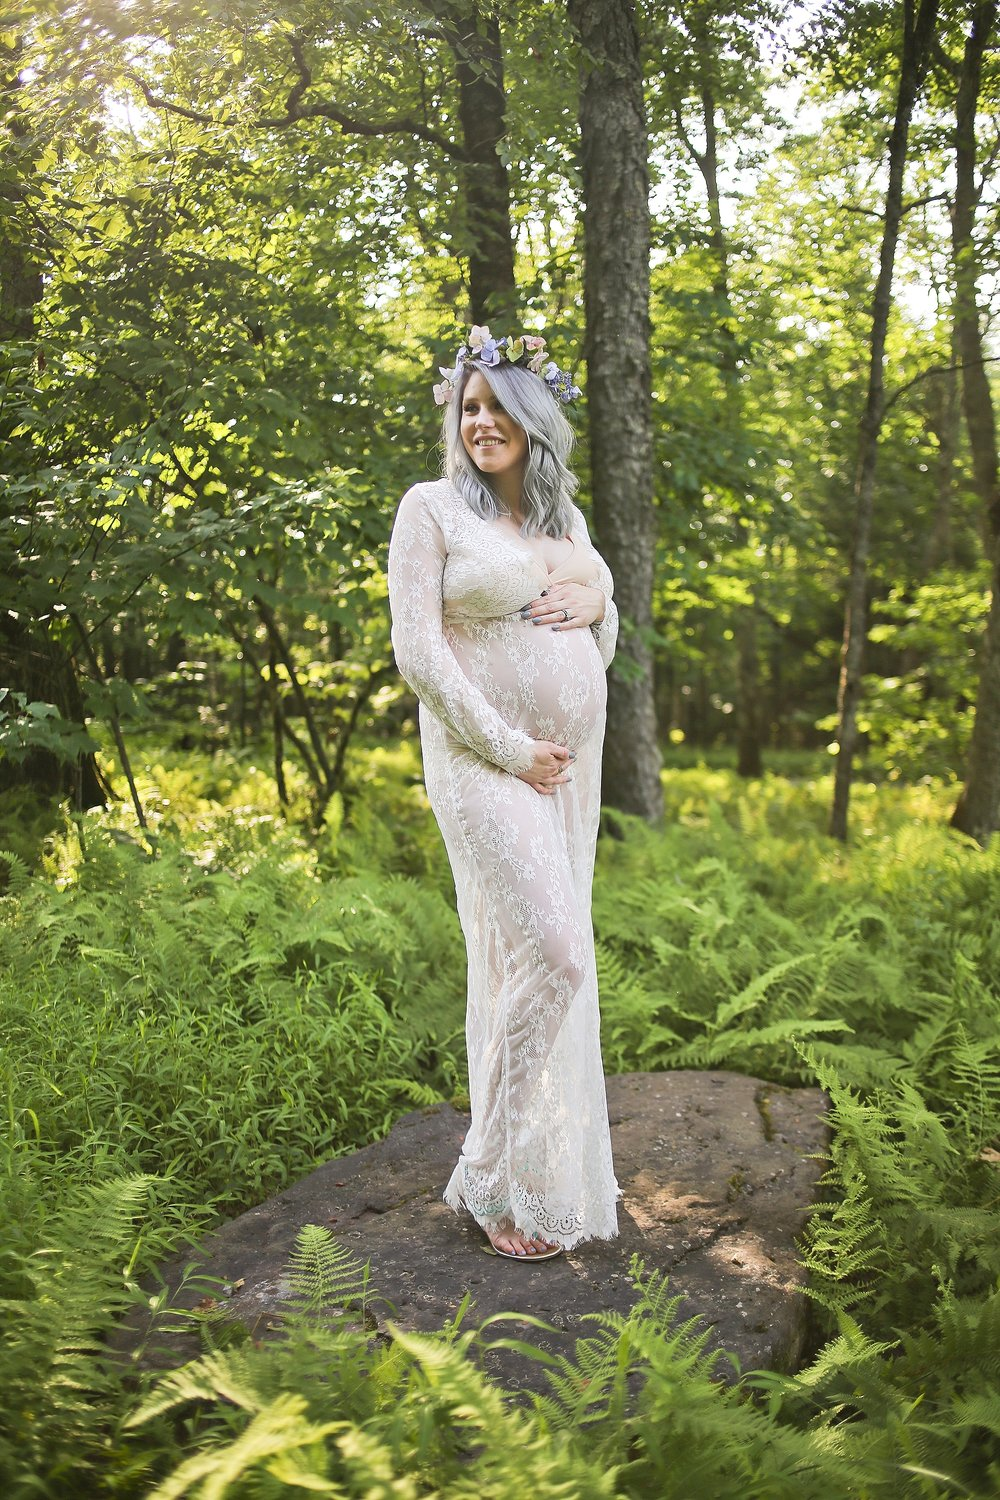 Fern Filled Forest Maternity Portraits - Lace Maxi Dress and Flower Crown Blacksburg, Virginia Maternity Portrait Photographer